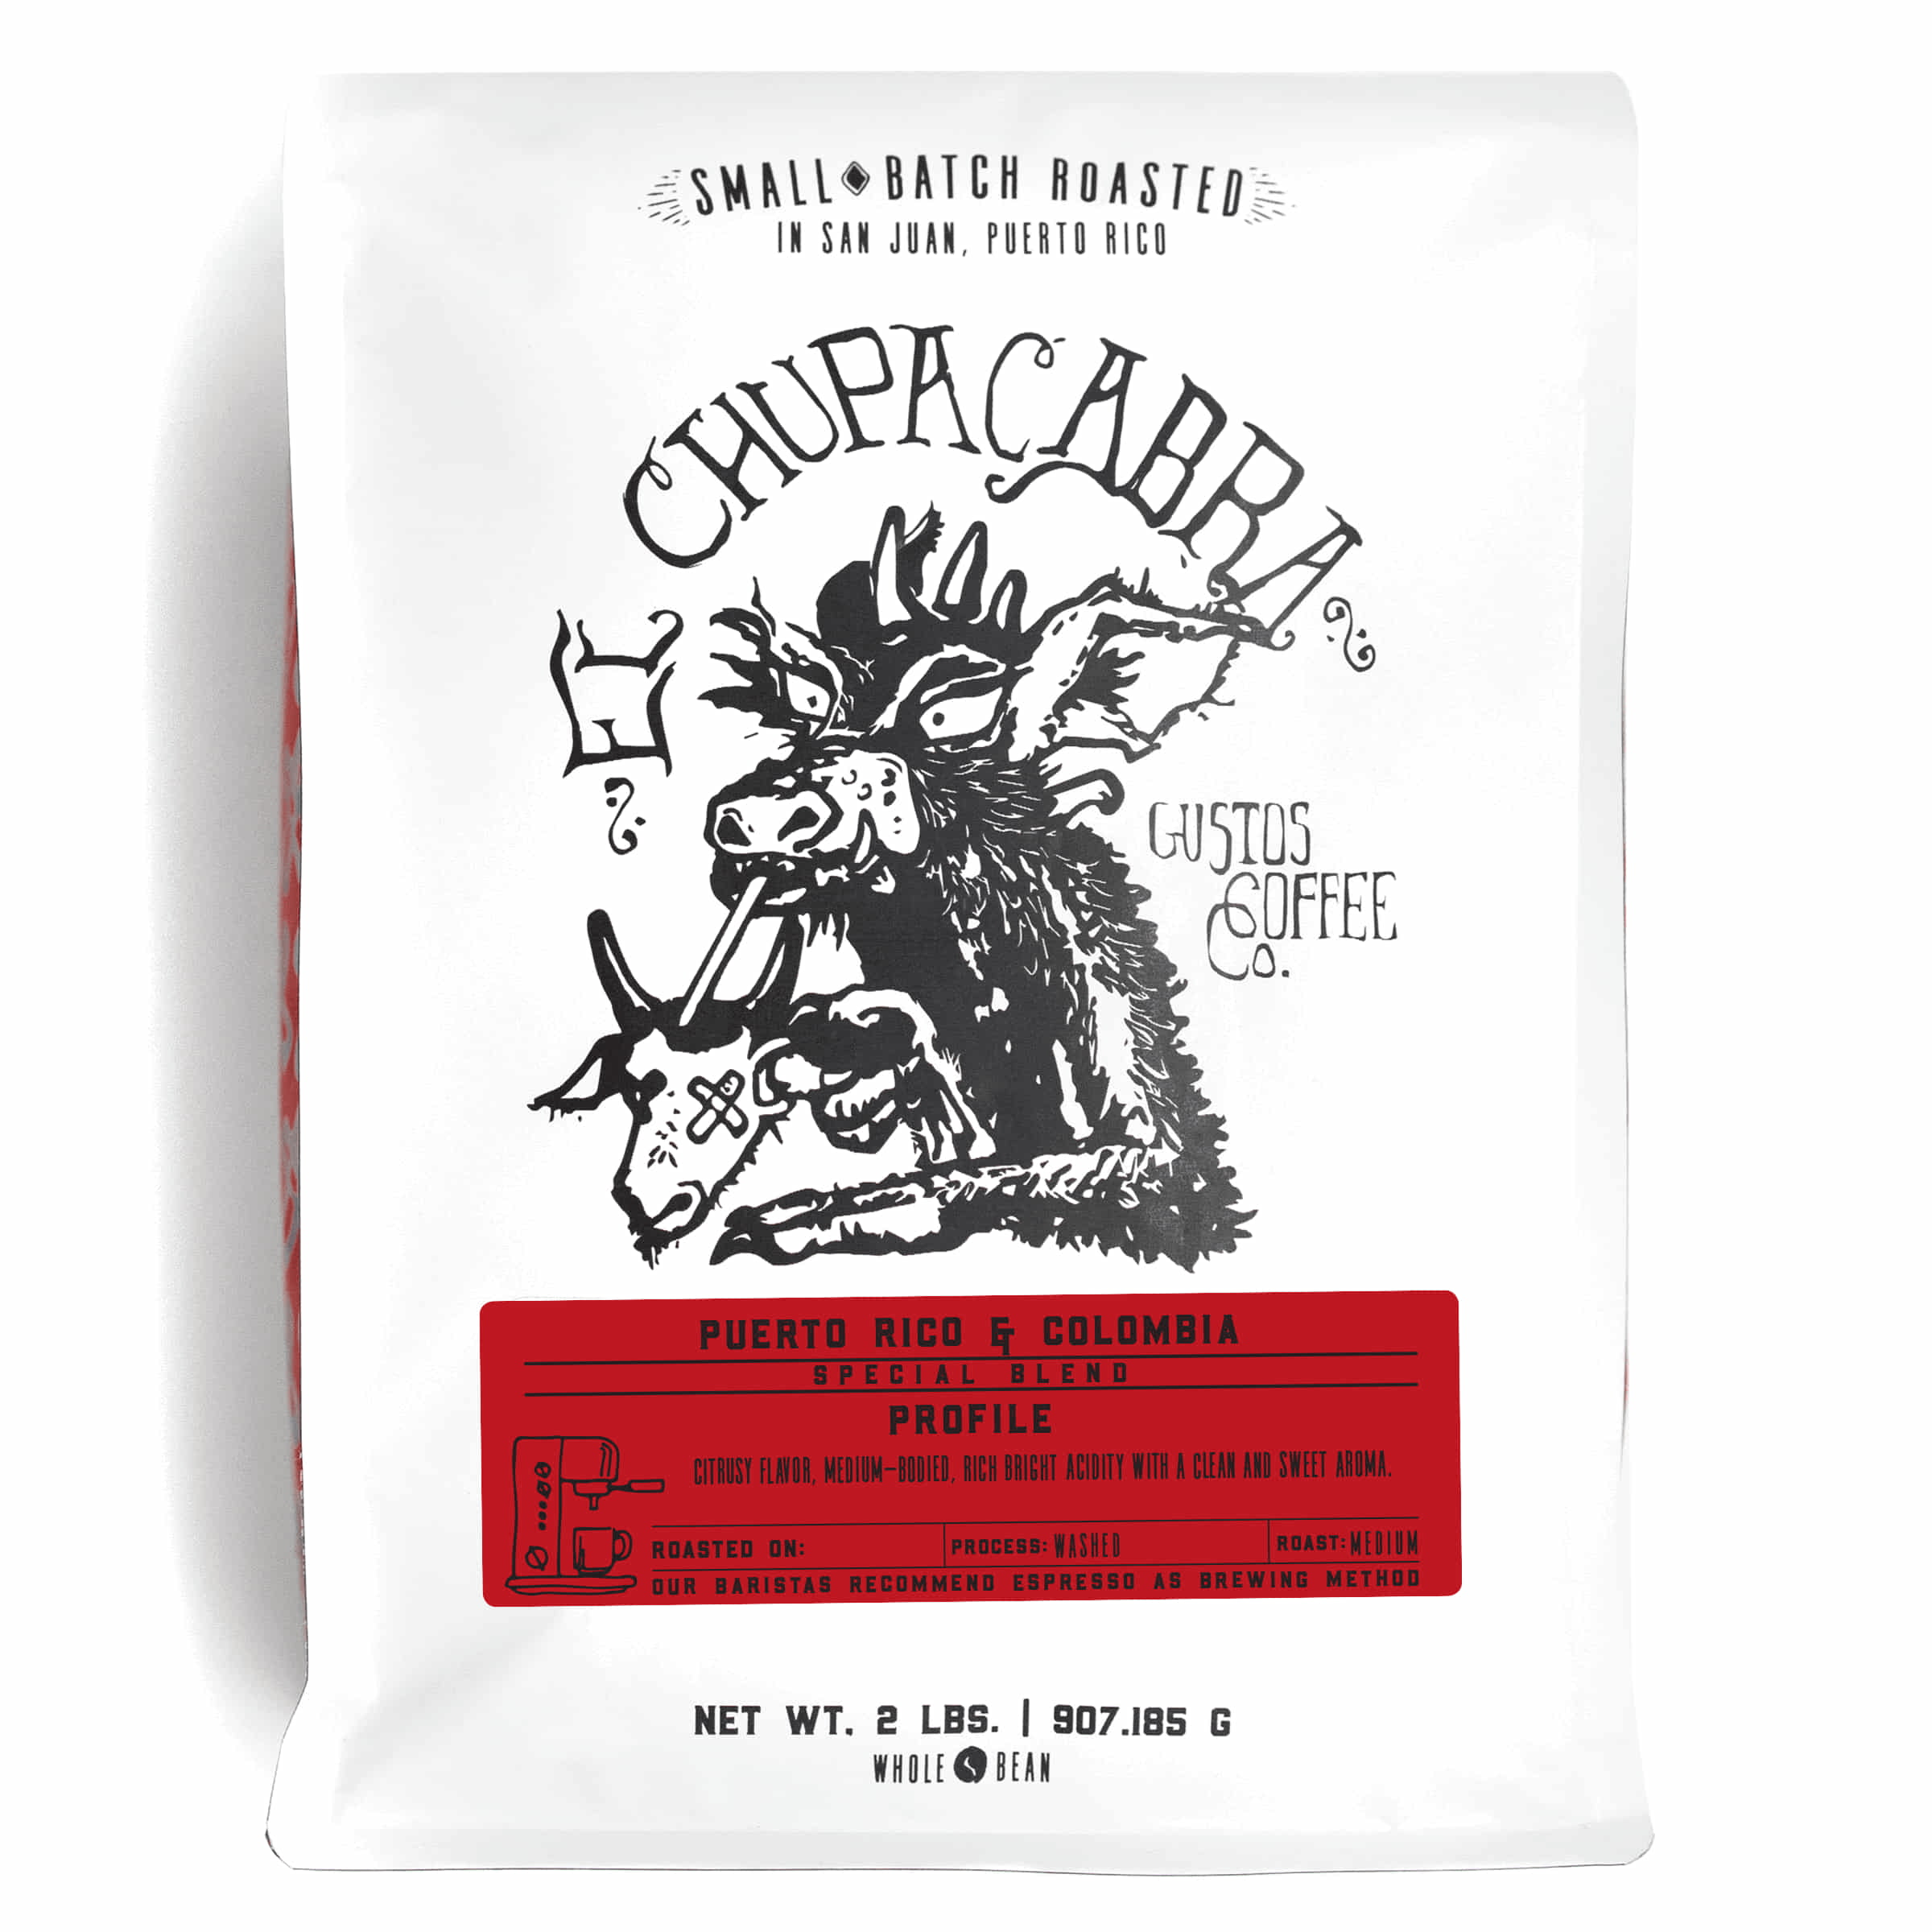 A 2lb bag of Specialty Coffee Blend Puerto Rico and Colombia El Chupacabra by Gustos Coffee Co